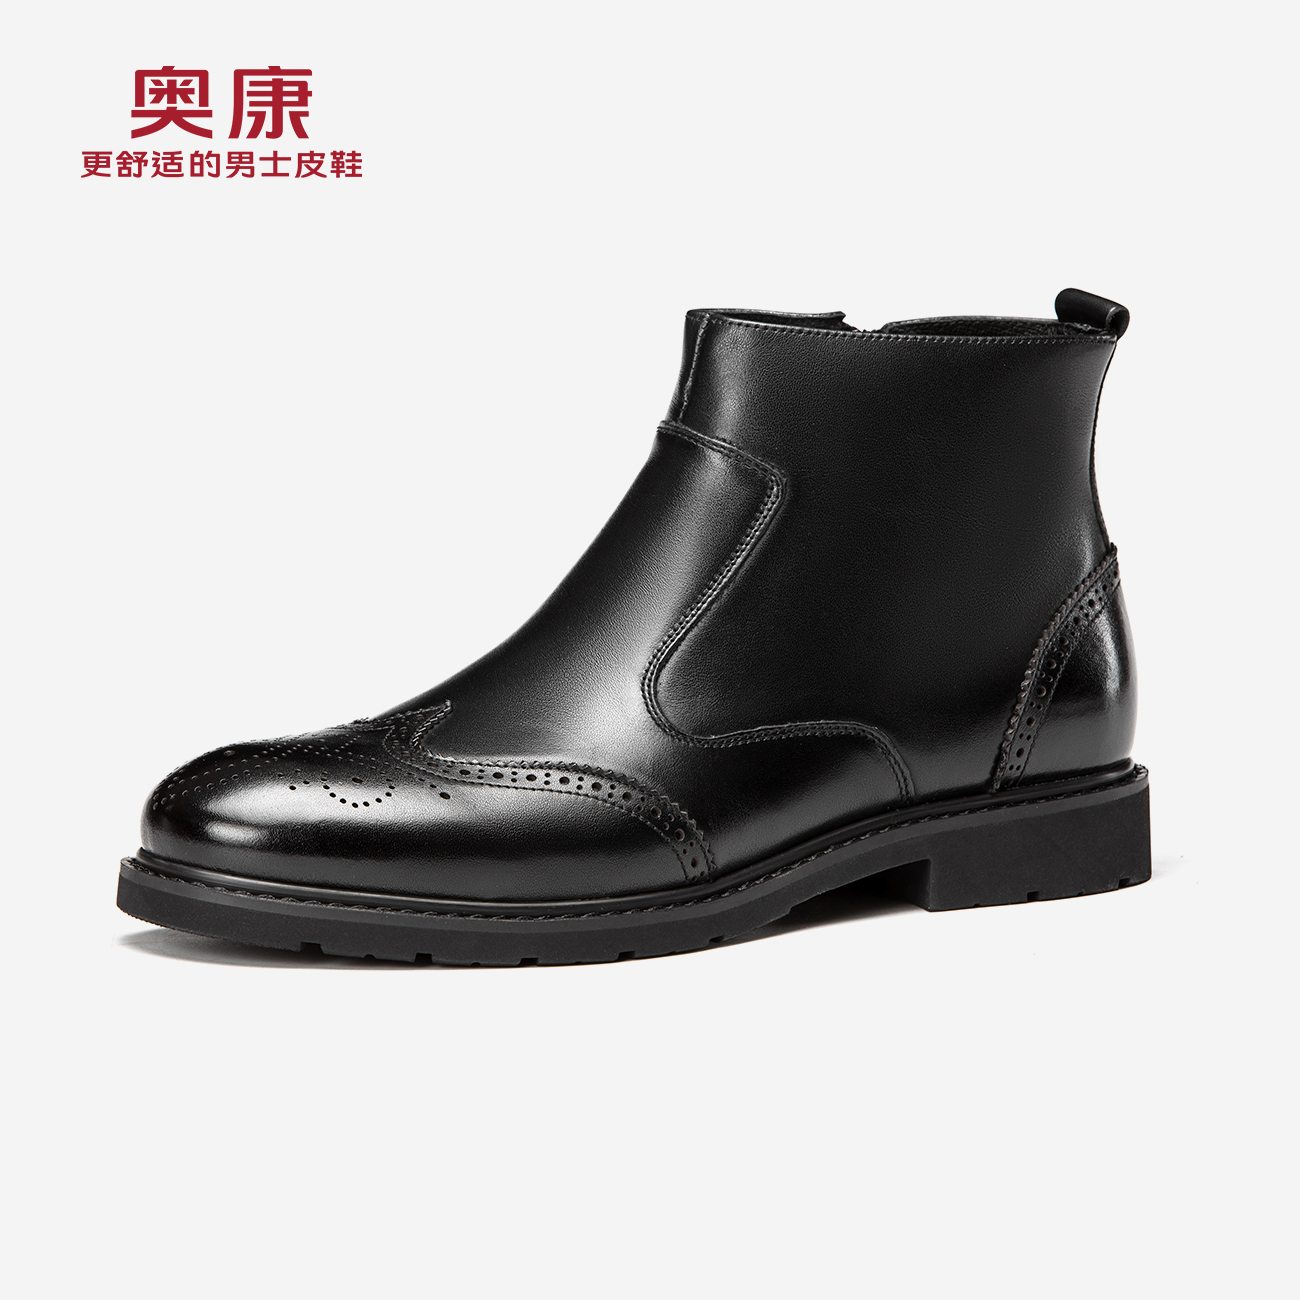 Aokang mens shoes 2021 autumn winter new rub color Retro Leather Brown block English Chelsea boots